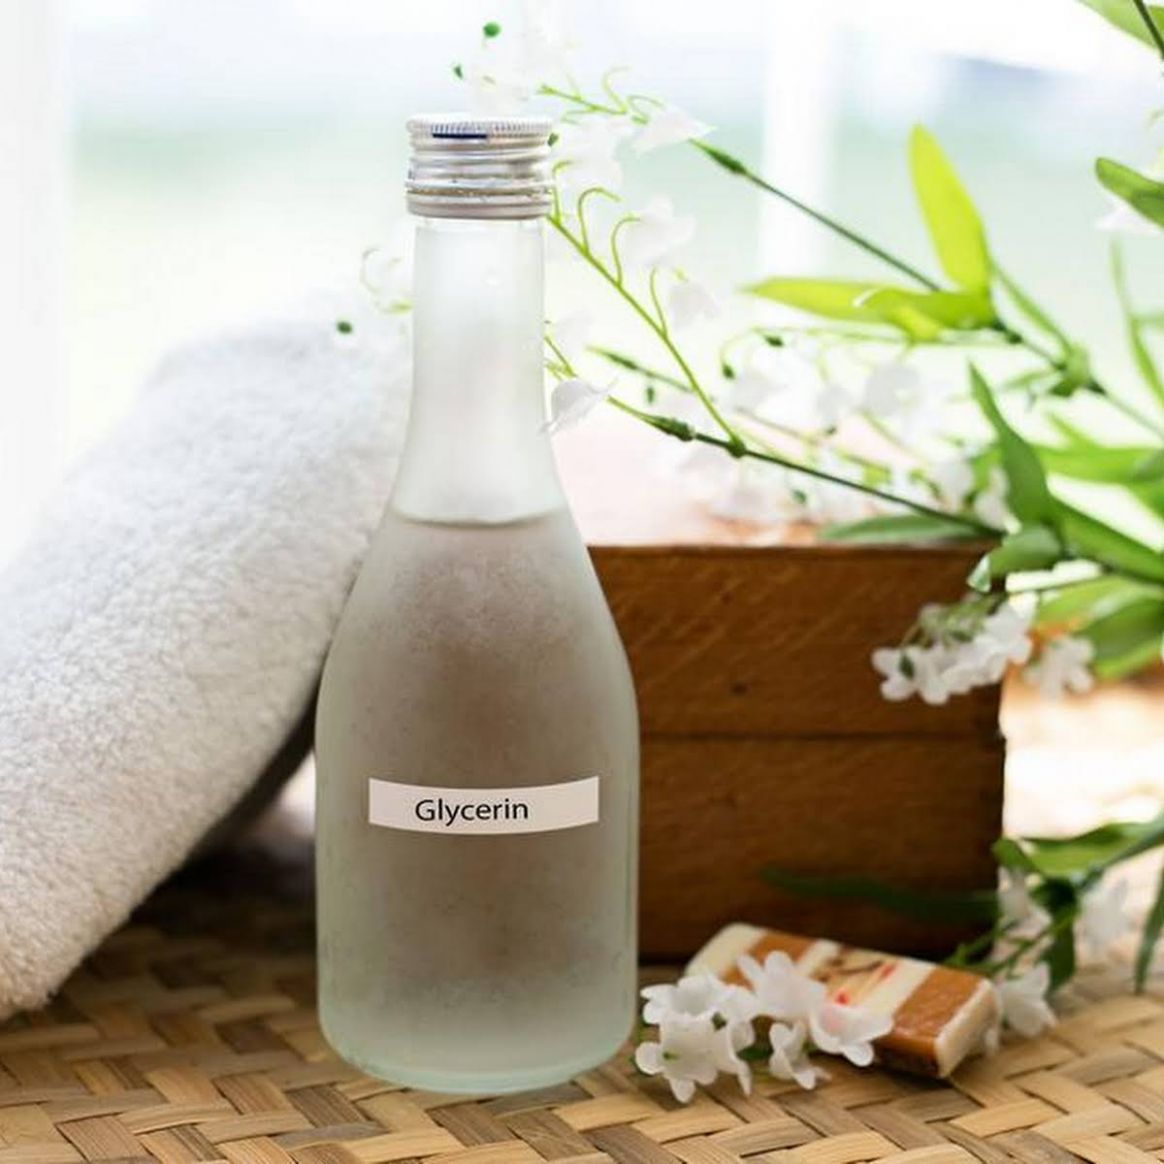 Homemade Glycerin Moisturizer - Recipes With Vegetable Glycerin